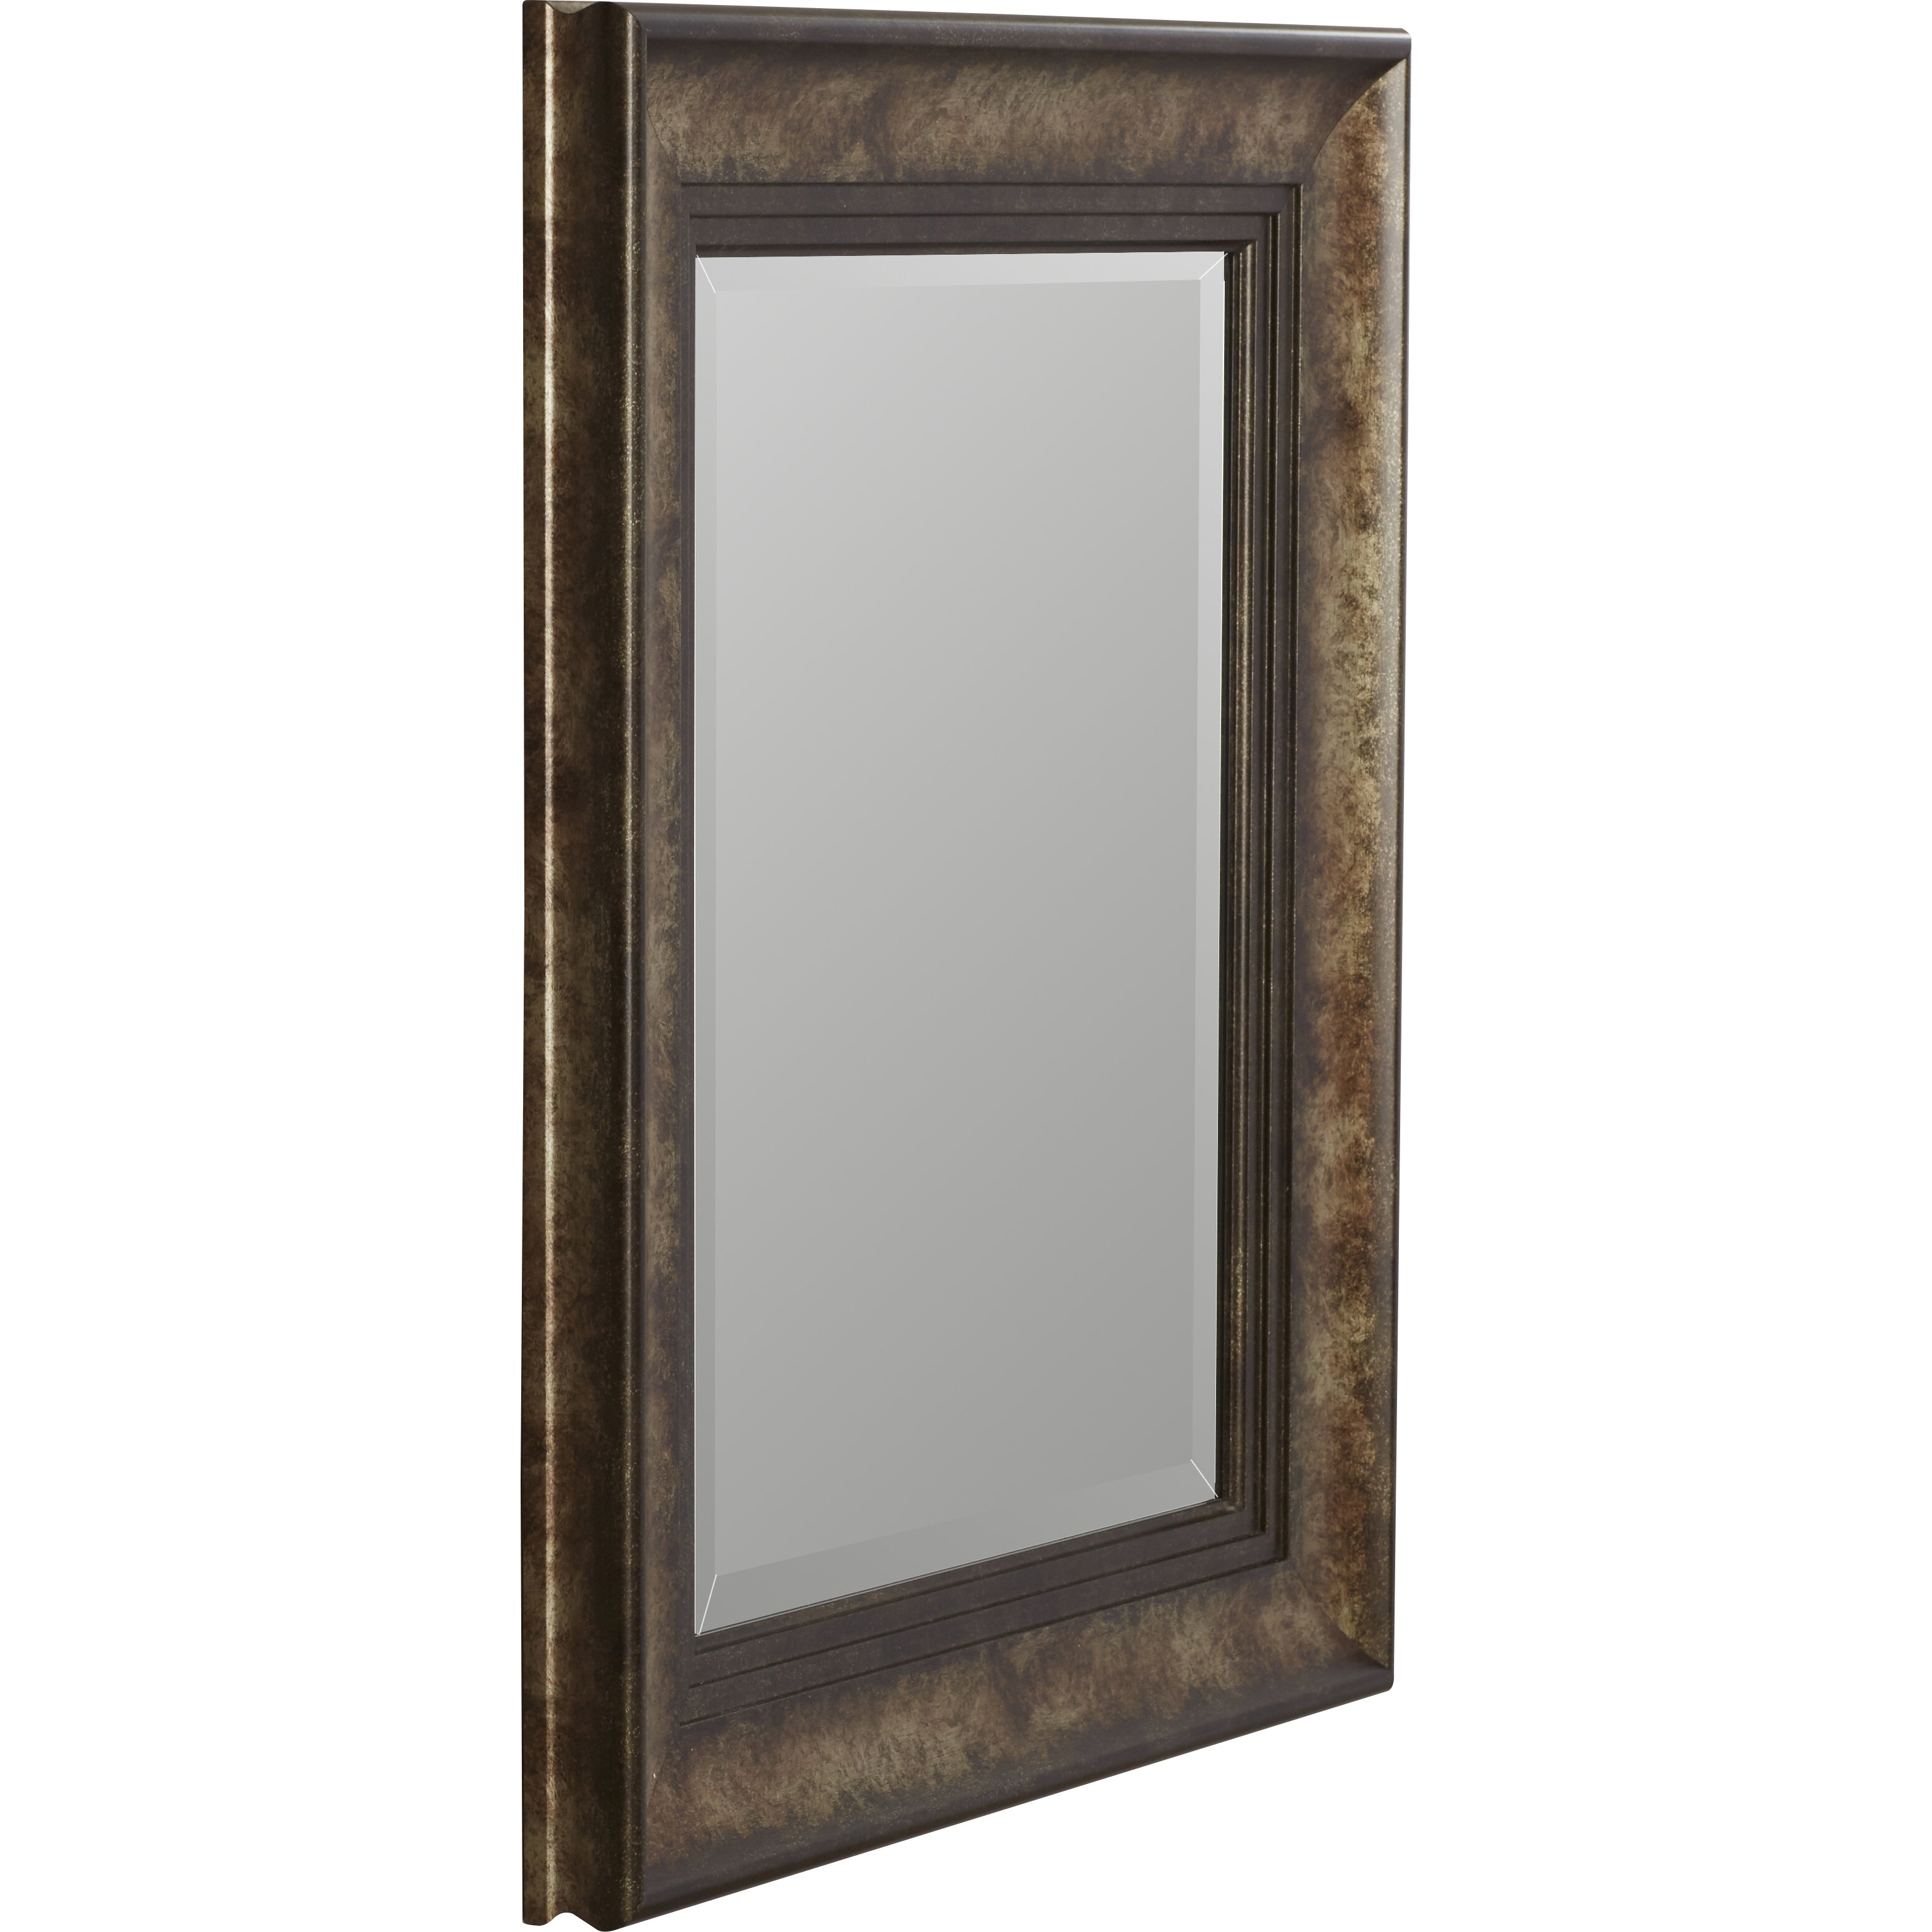 Darby home co framed beveled plate glass mirror reviews for Glass and mirror company